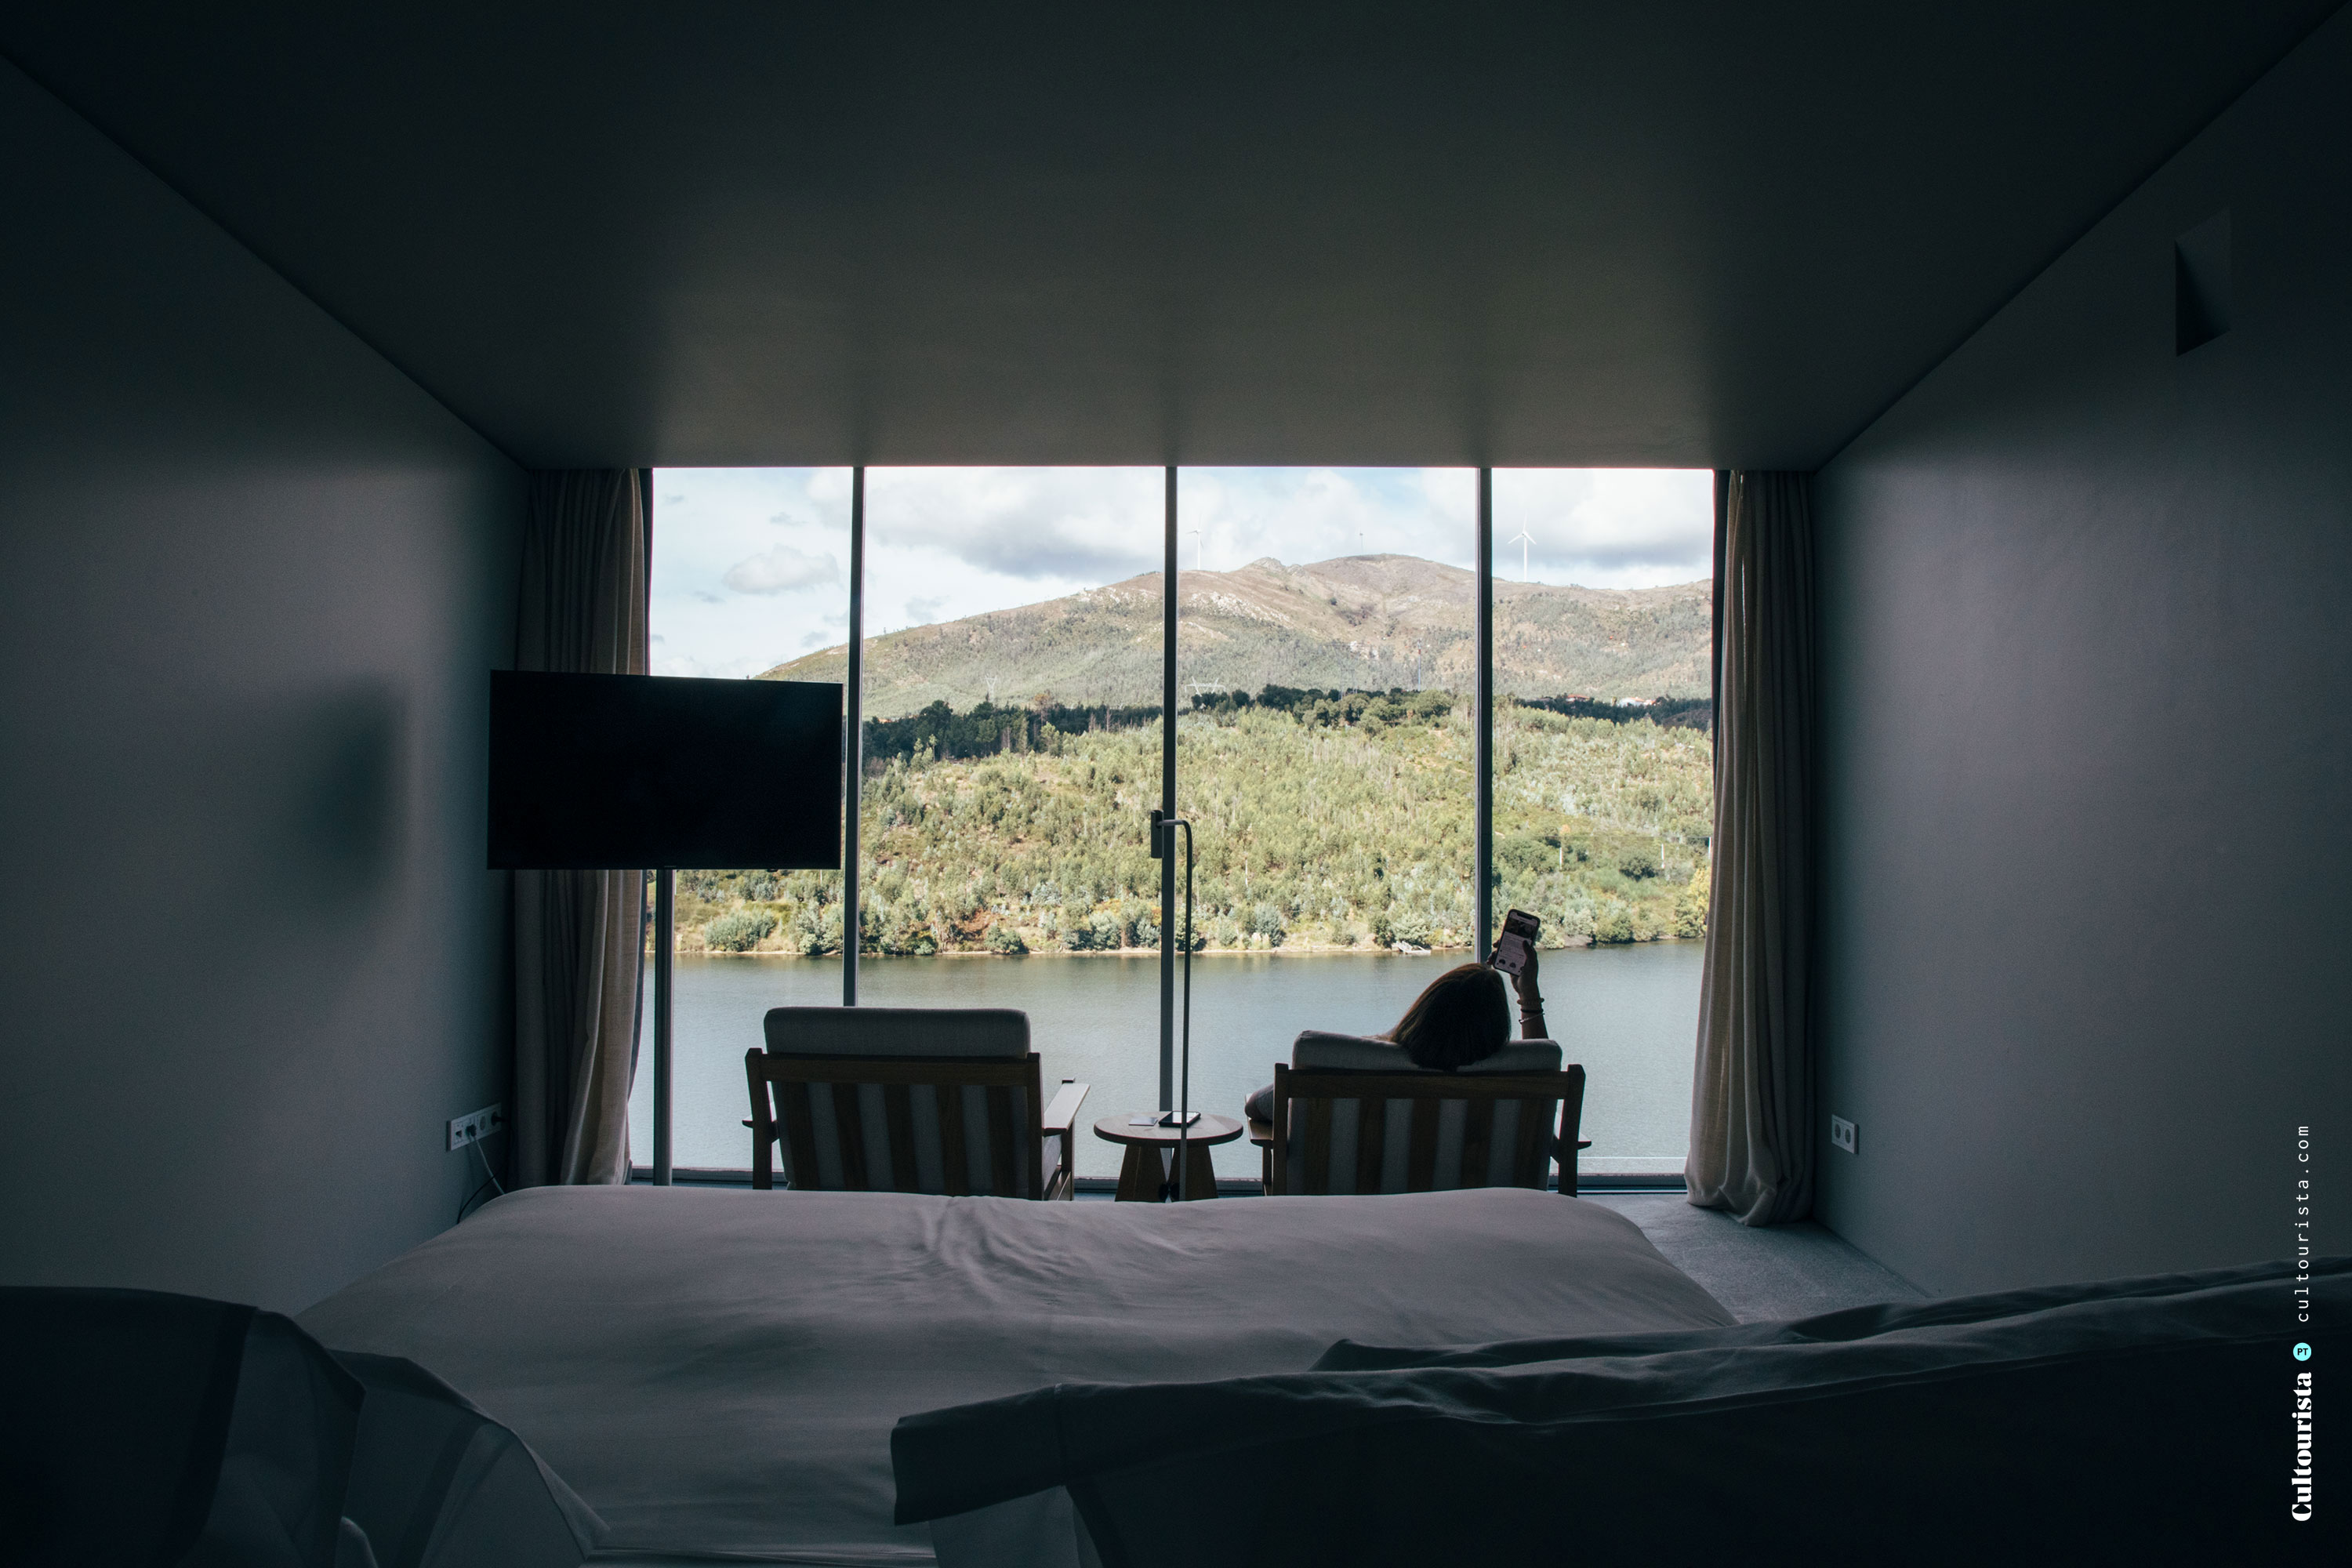 Bedroom with river view at the Hotel Douro41 Portugal